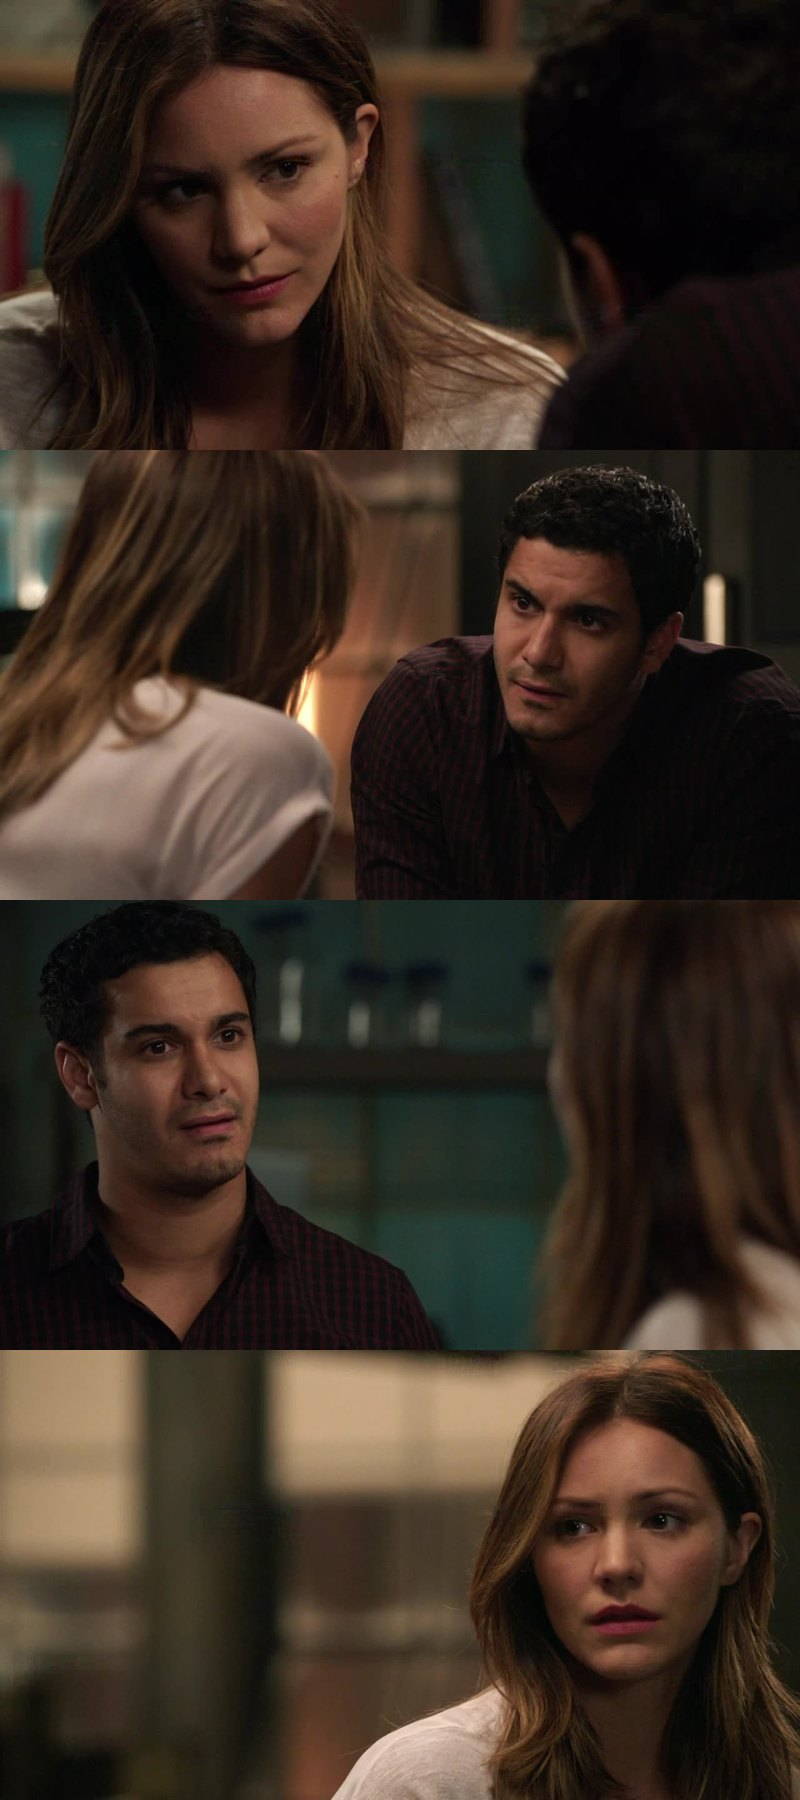 I really like Paige' character. The way she tried to deal with emotions of the team but above all Walter's ones is amazing . She is really an important part of Scorpion. When the conversation she had with Walter at the the end was heartbreaking and touching at the same time.